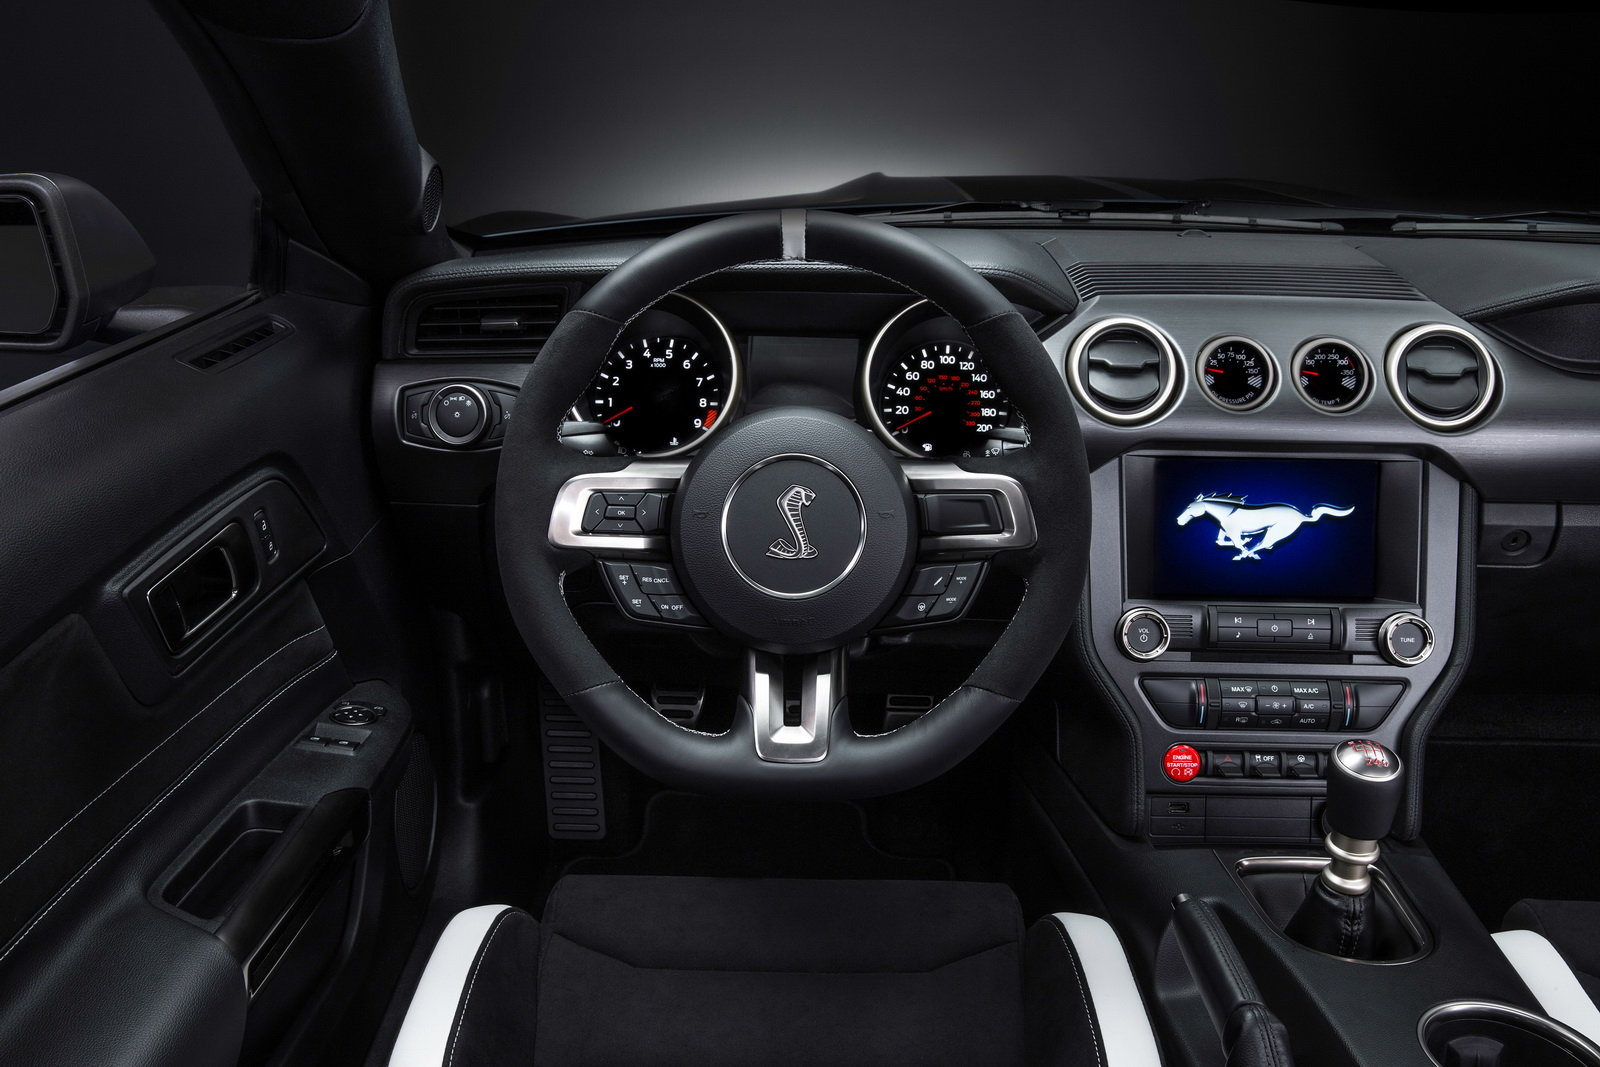 2016 Ford Mustang Shelby Gt350r Cockpit And Speedometer (Photo 24 of 47)